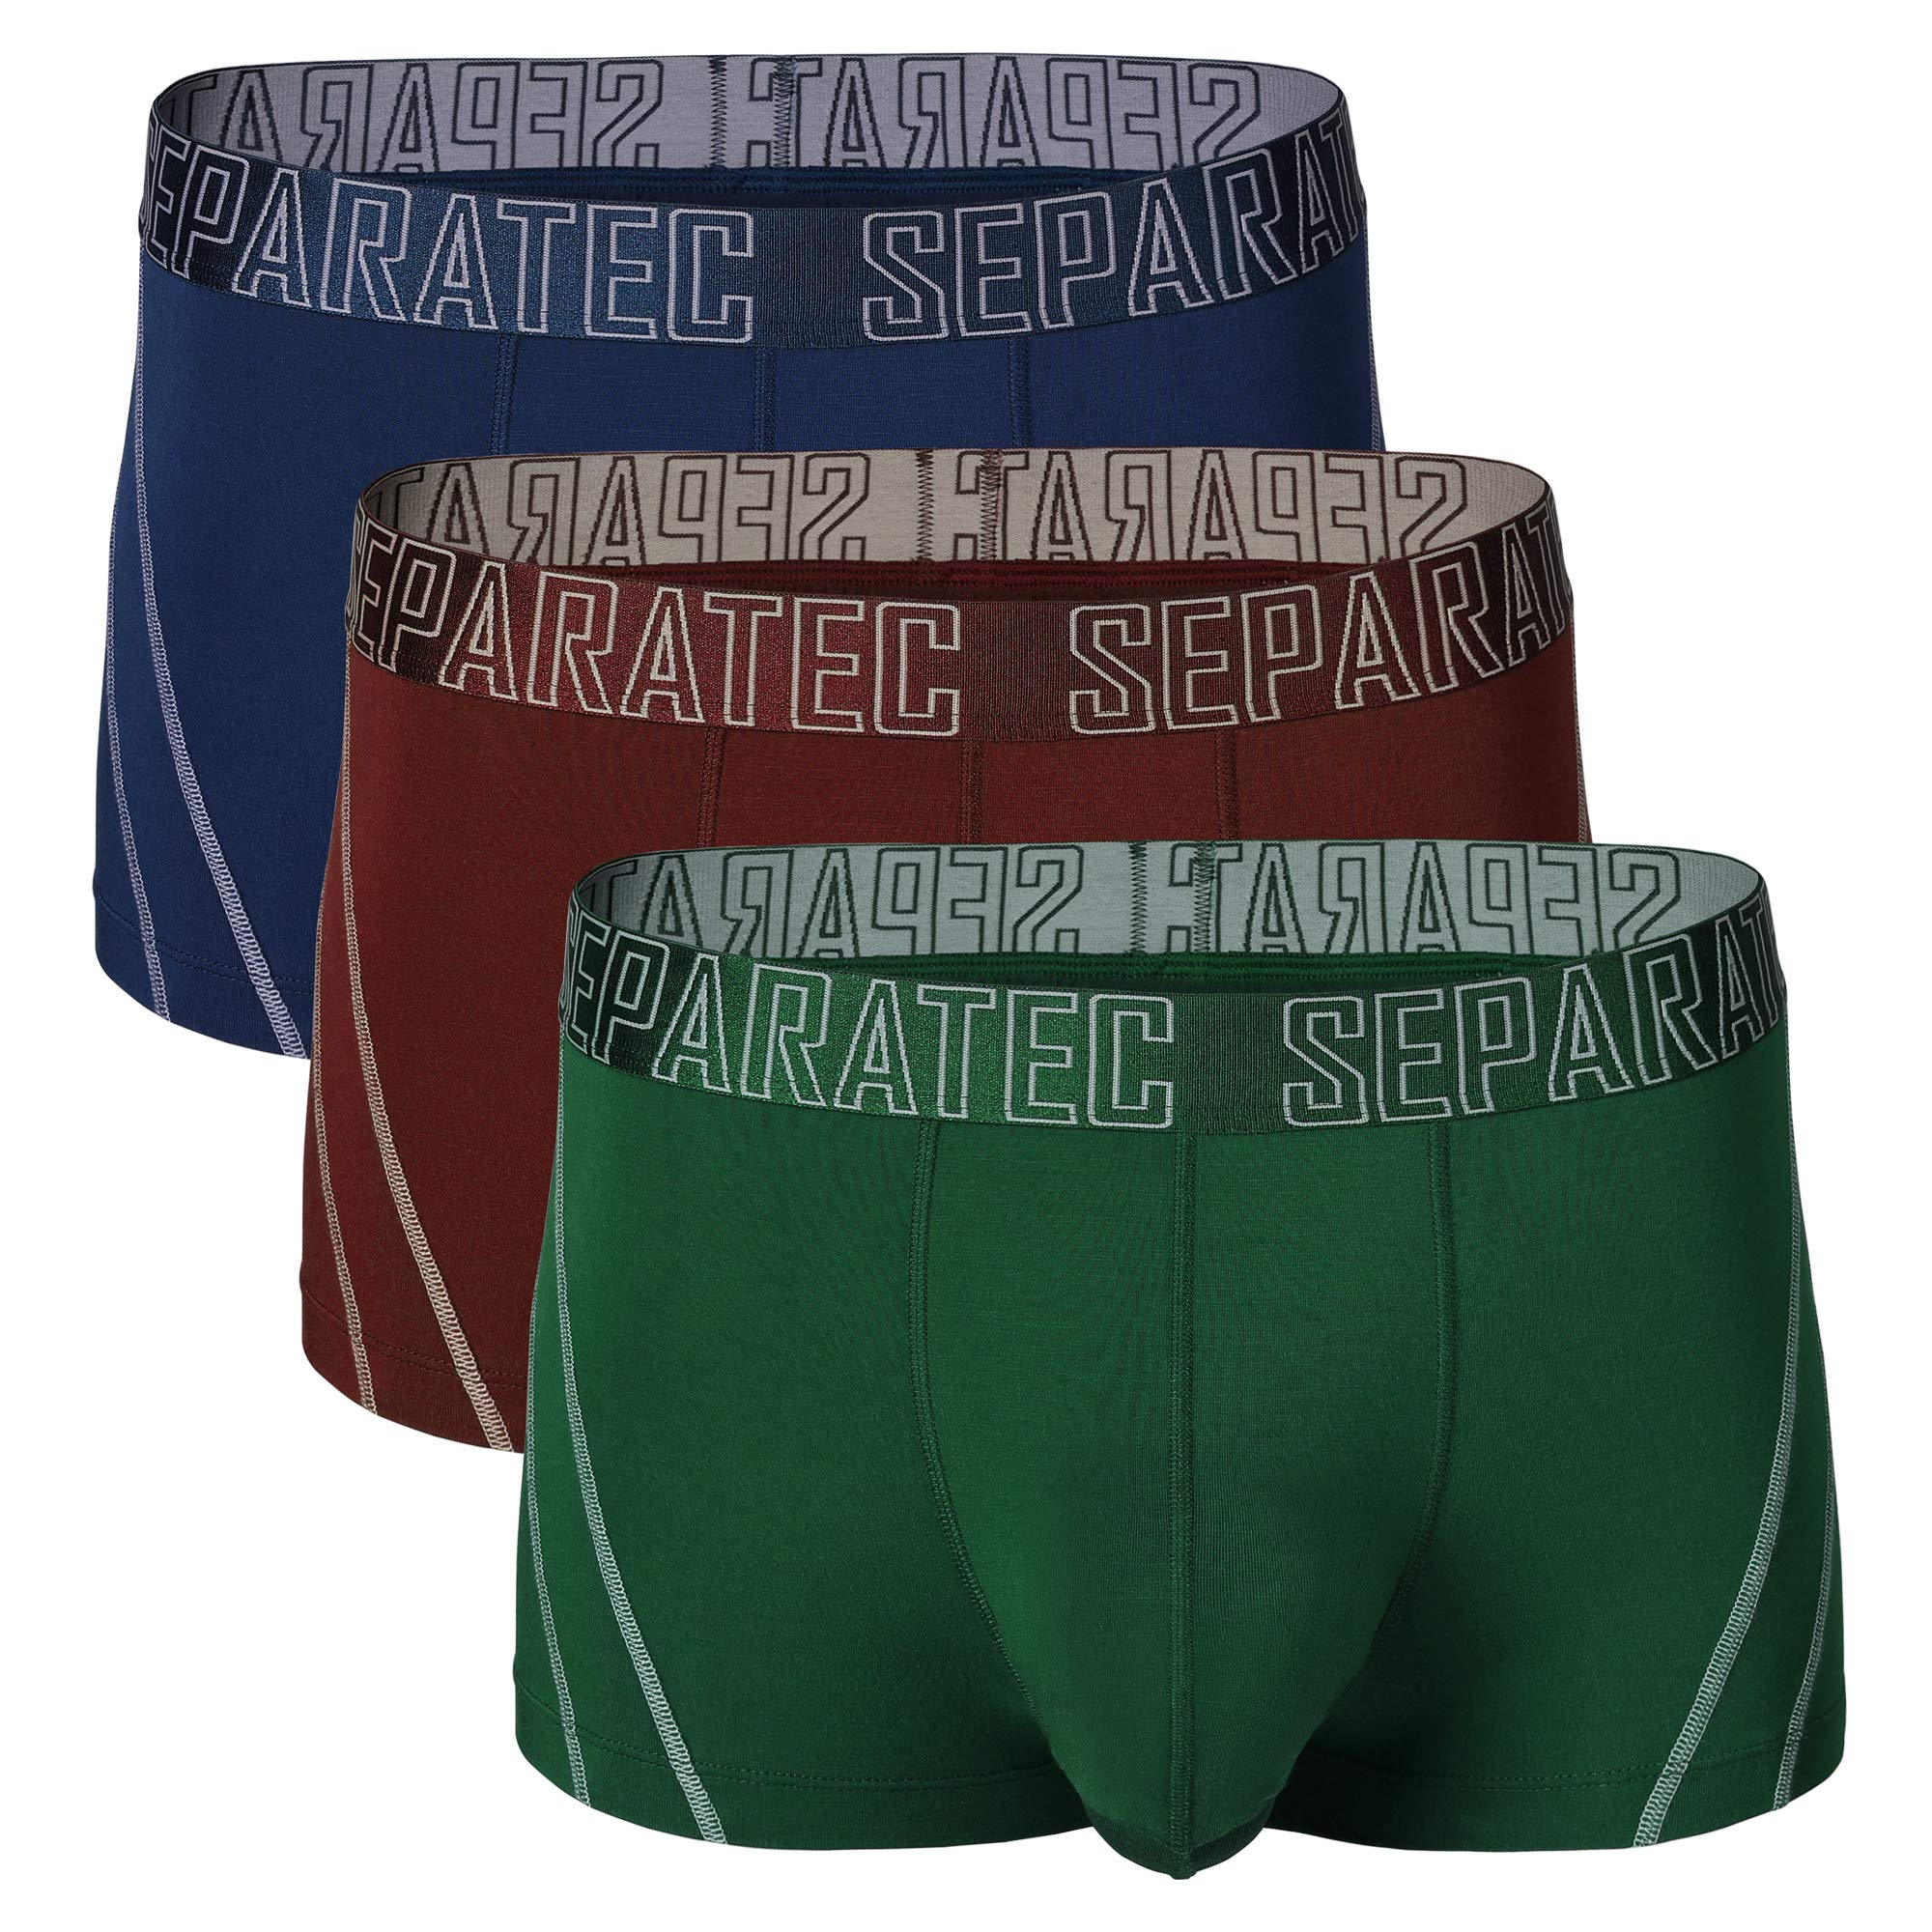 Separatec Men's 3 Pack Soft Bamboo Fiber Separate Pouches Trunks (M, Navy Blue/Olive Green/Maroon) by Separatec